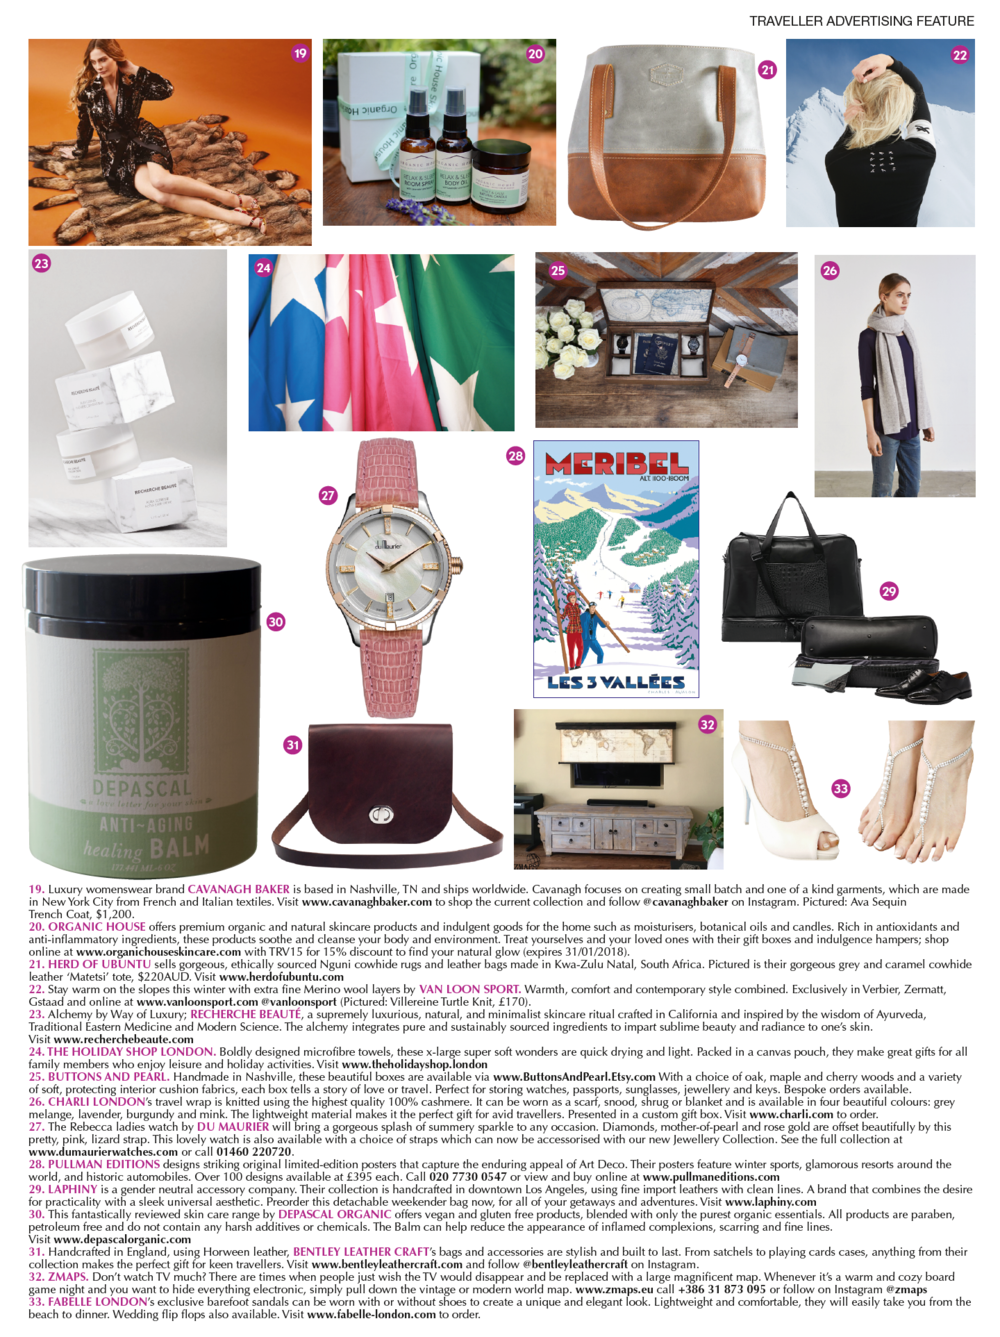 233 The Luxury Gift Guide.png